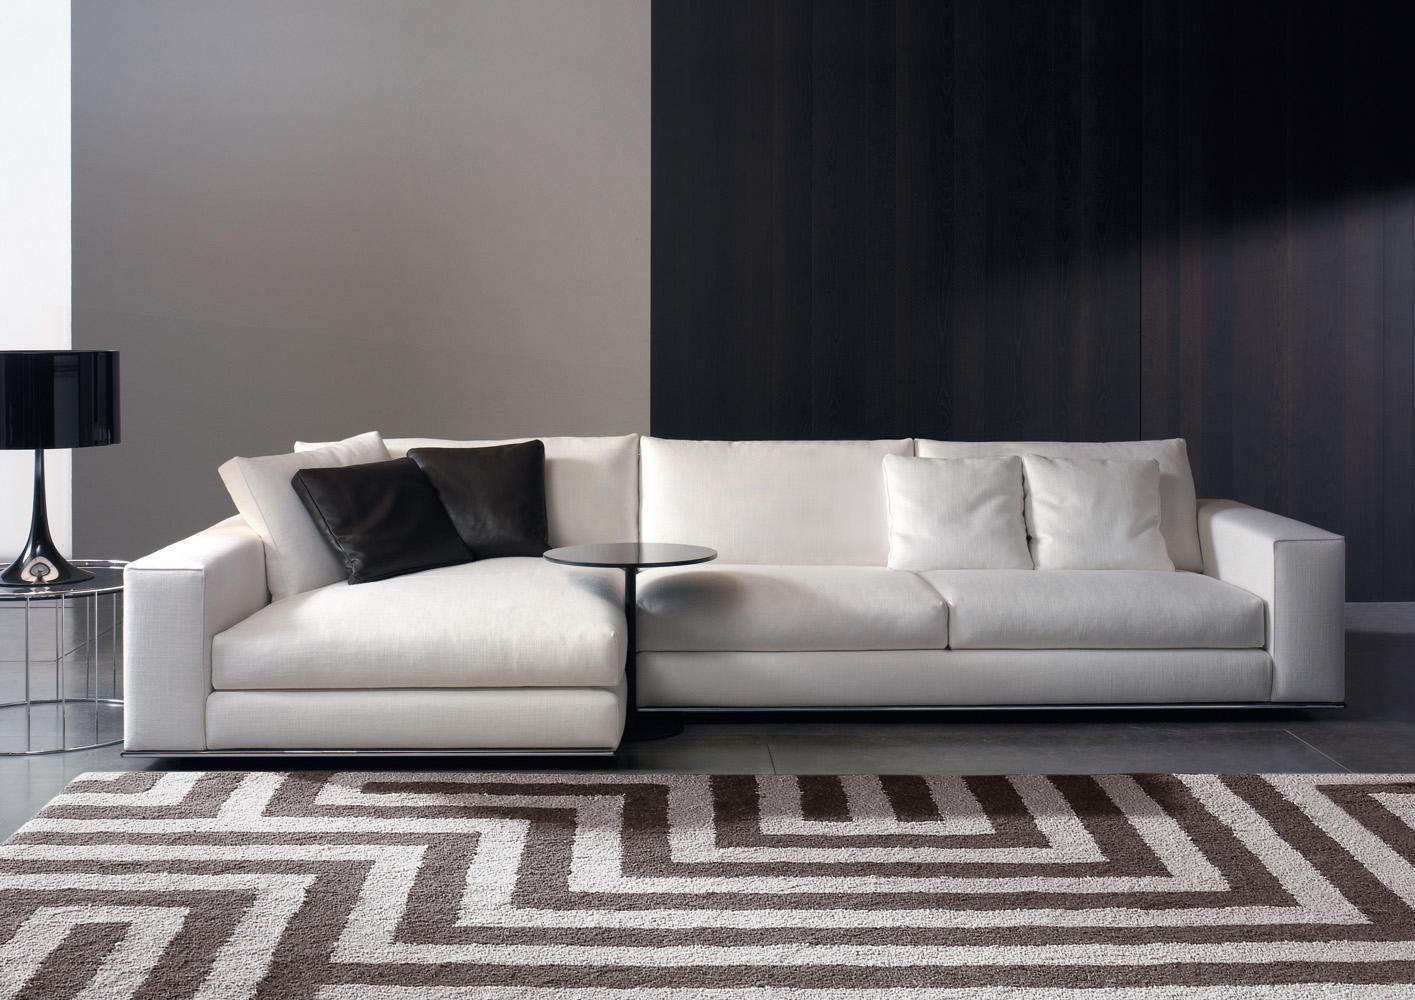 Hamilton Sofa | Designedrodolfo Dordoni, Minotti, Orange Skin Within Hamilton Sofas (View 7 of 20)